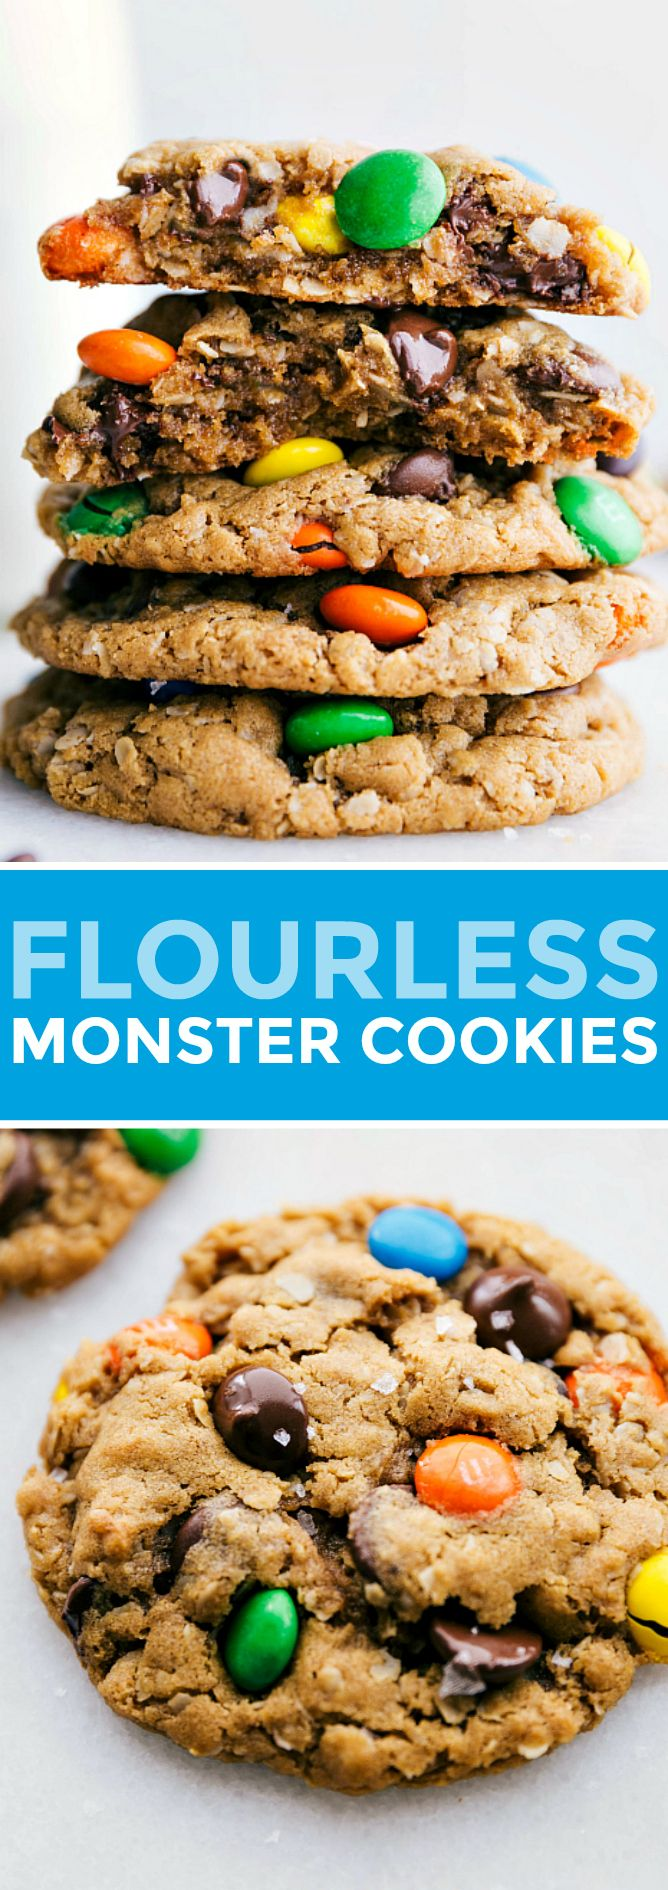 Flourless Monster Cookies #quickcookierecipes